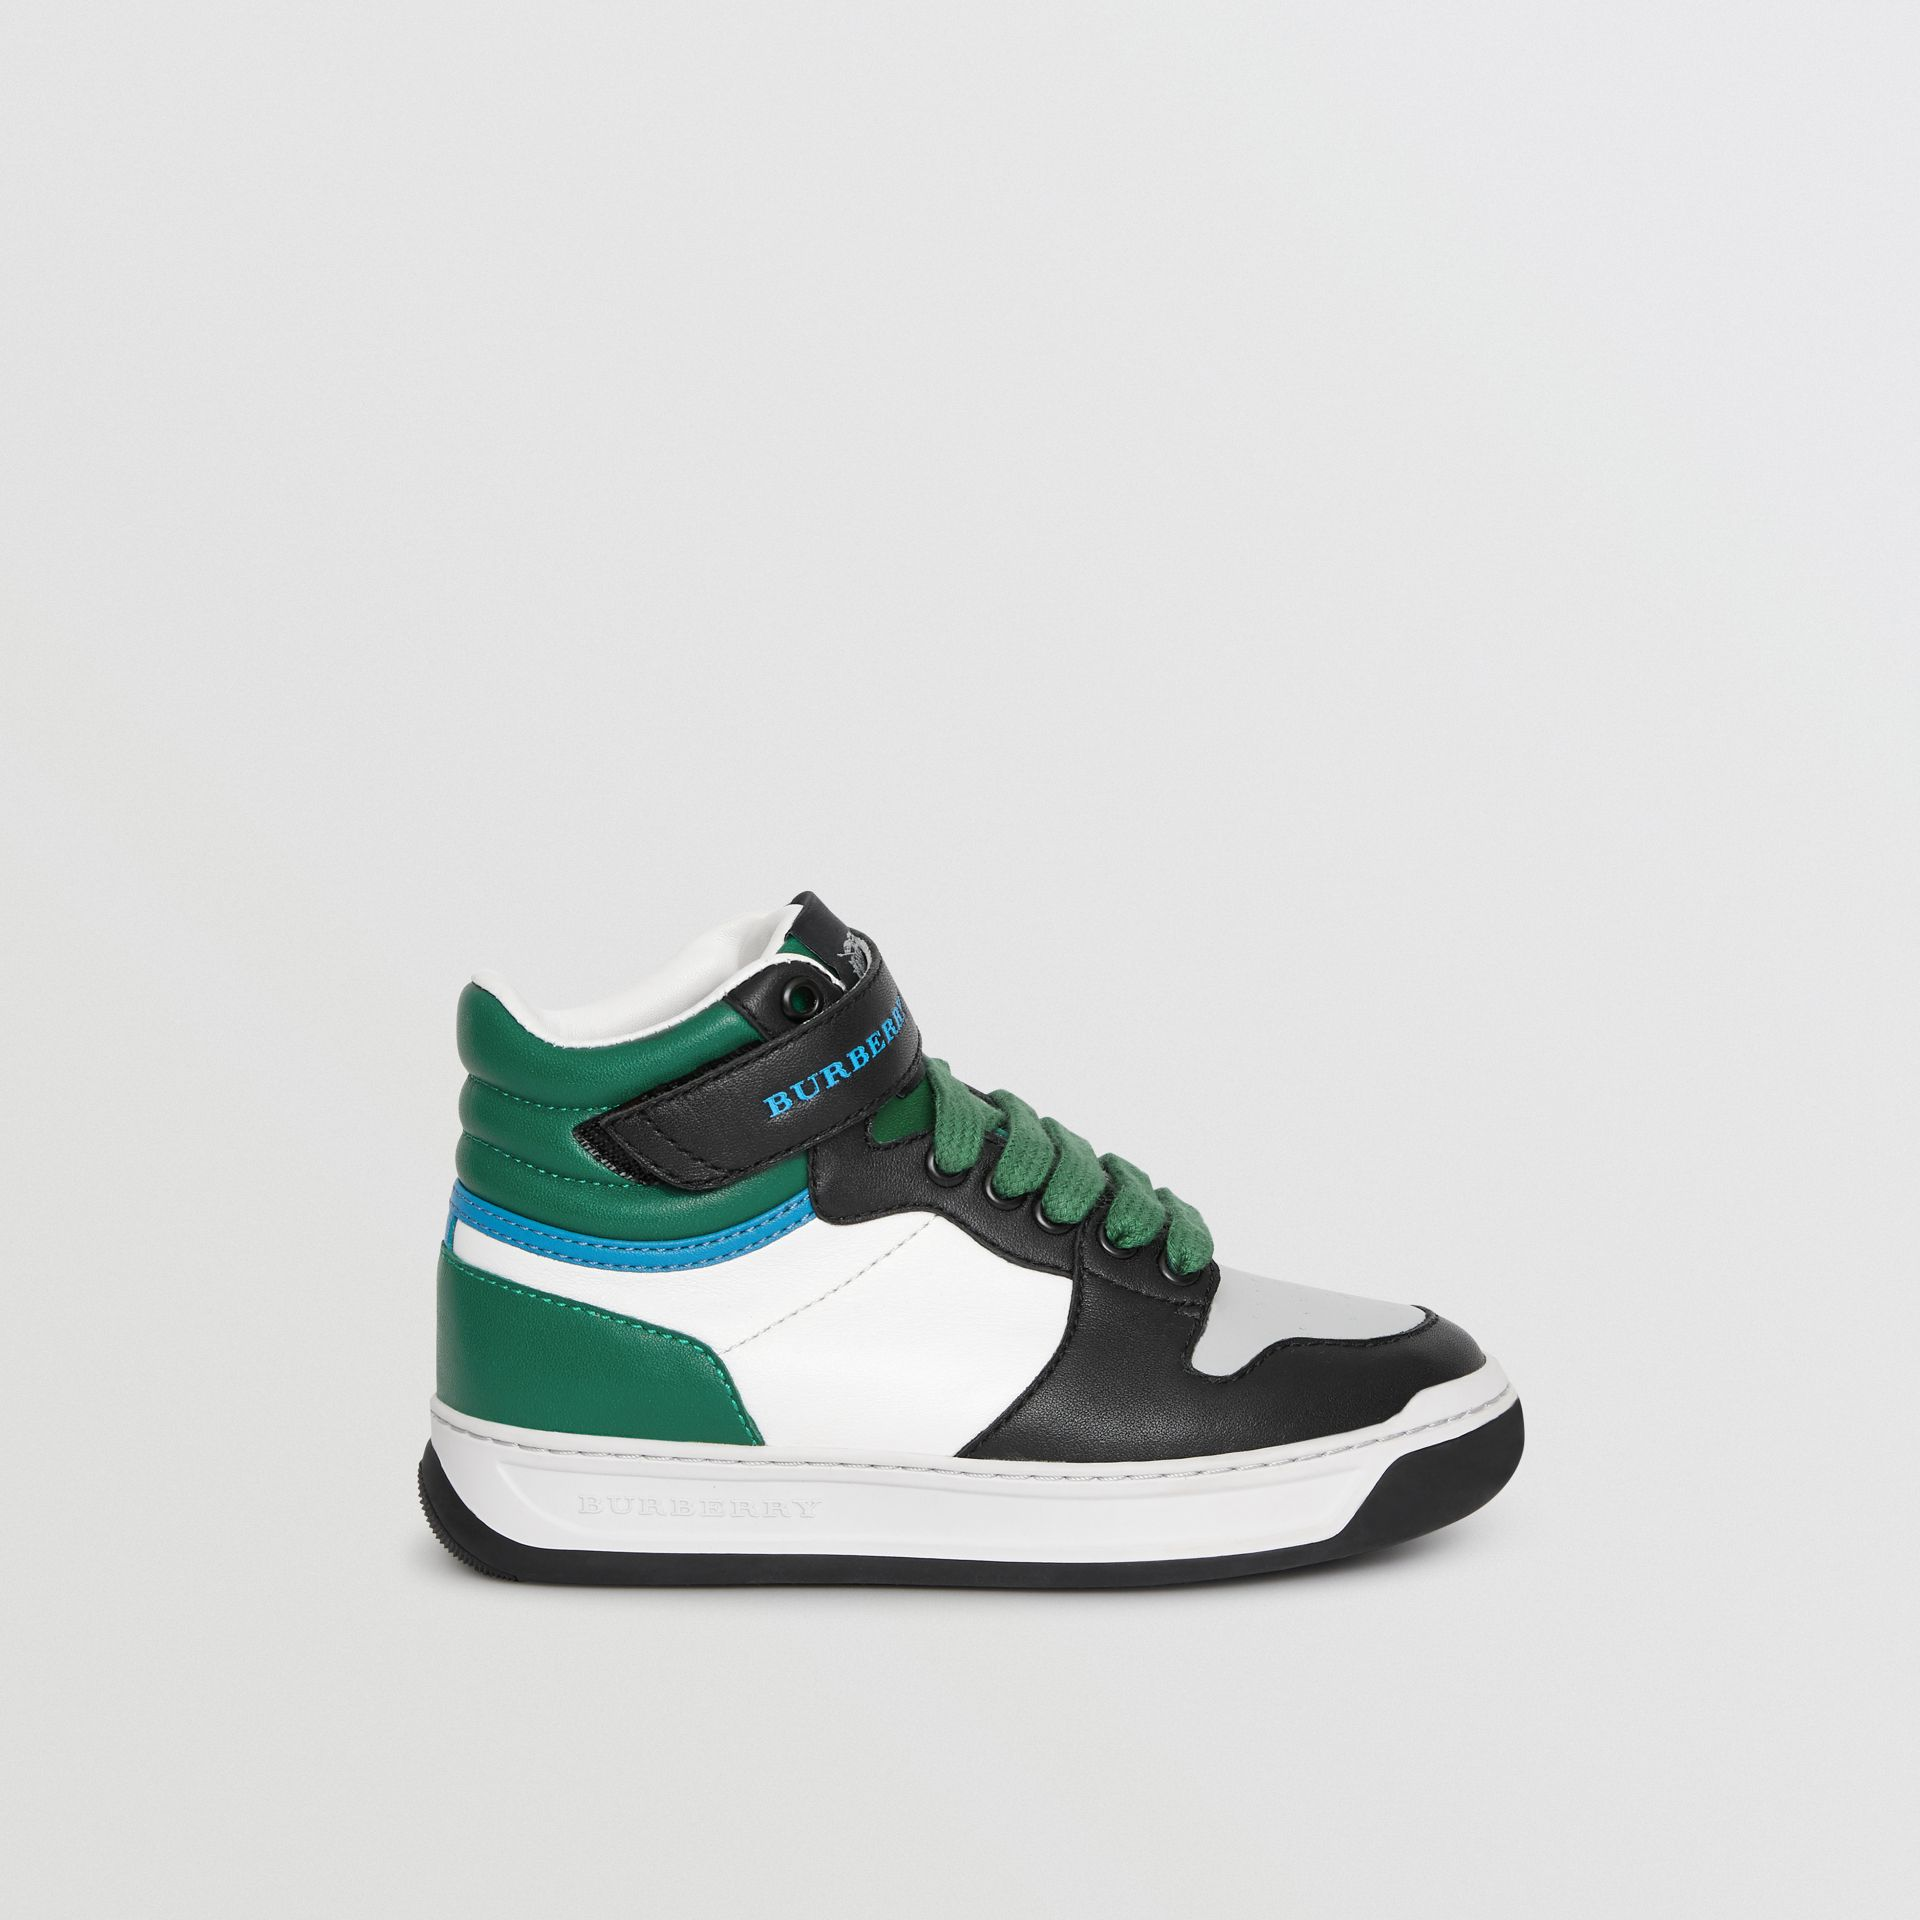 Colour Block Leather High-top Sneakers in Viridian Green - Children | Burberry United Kingdom - gallery image 3